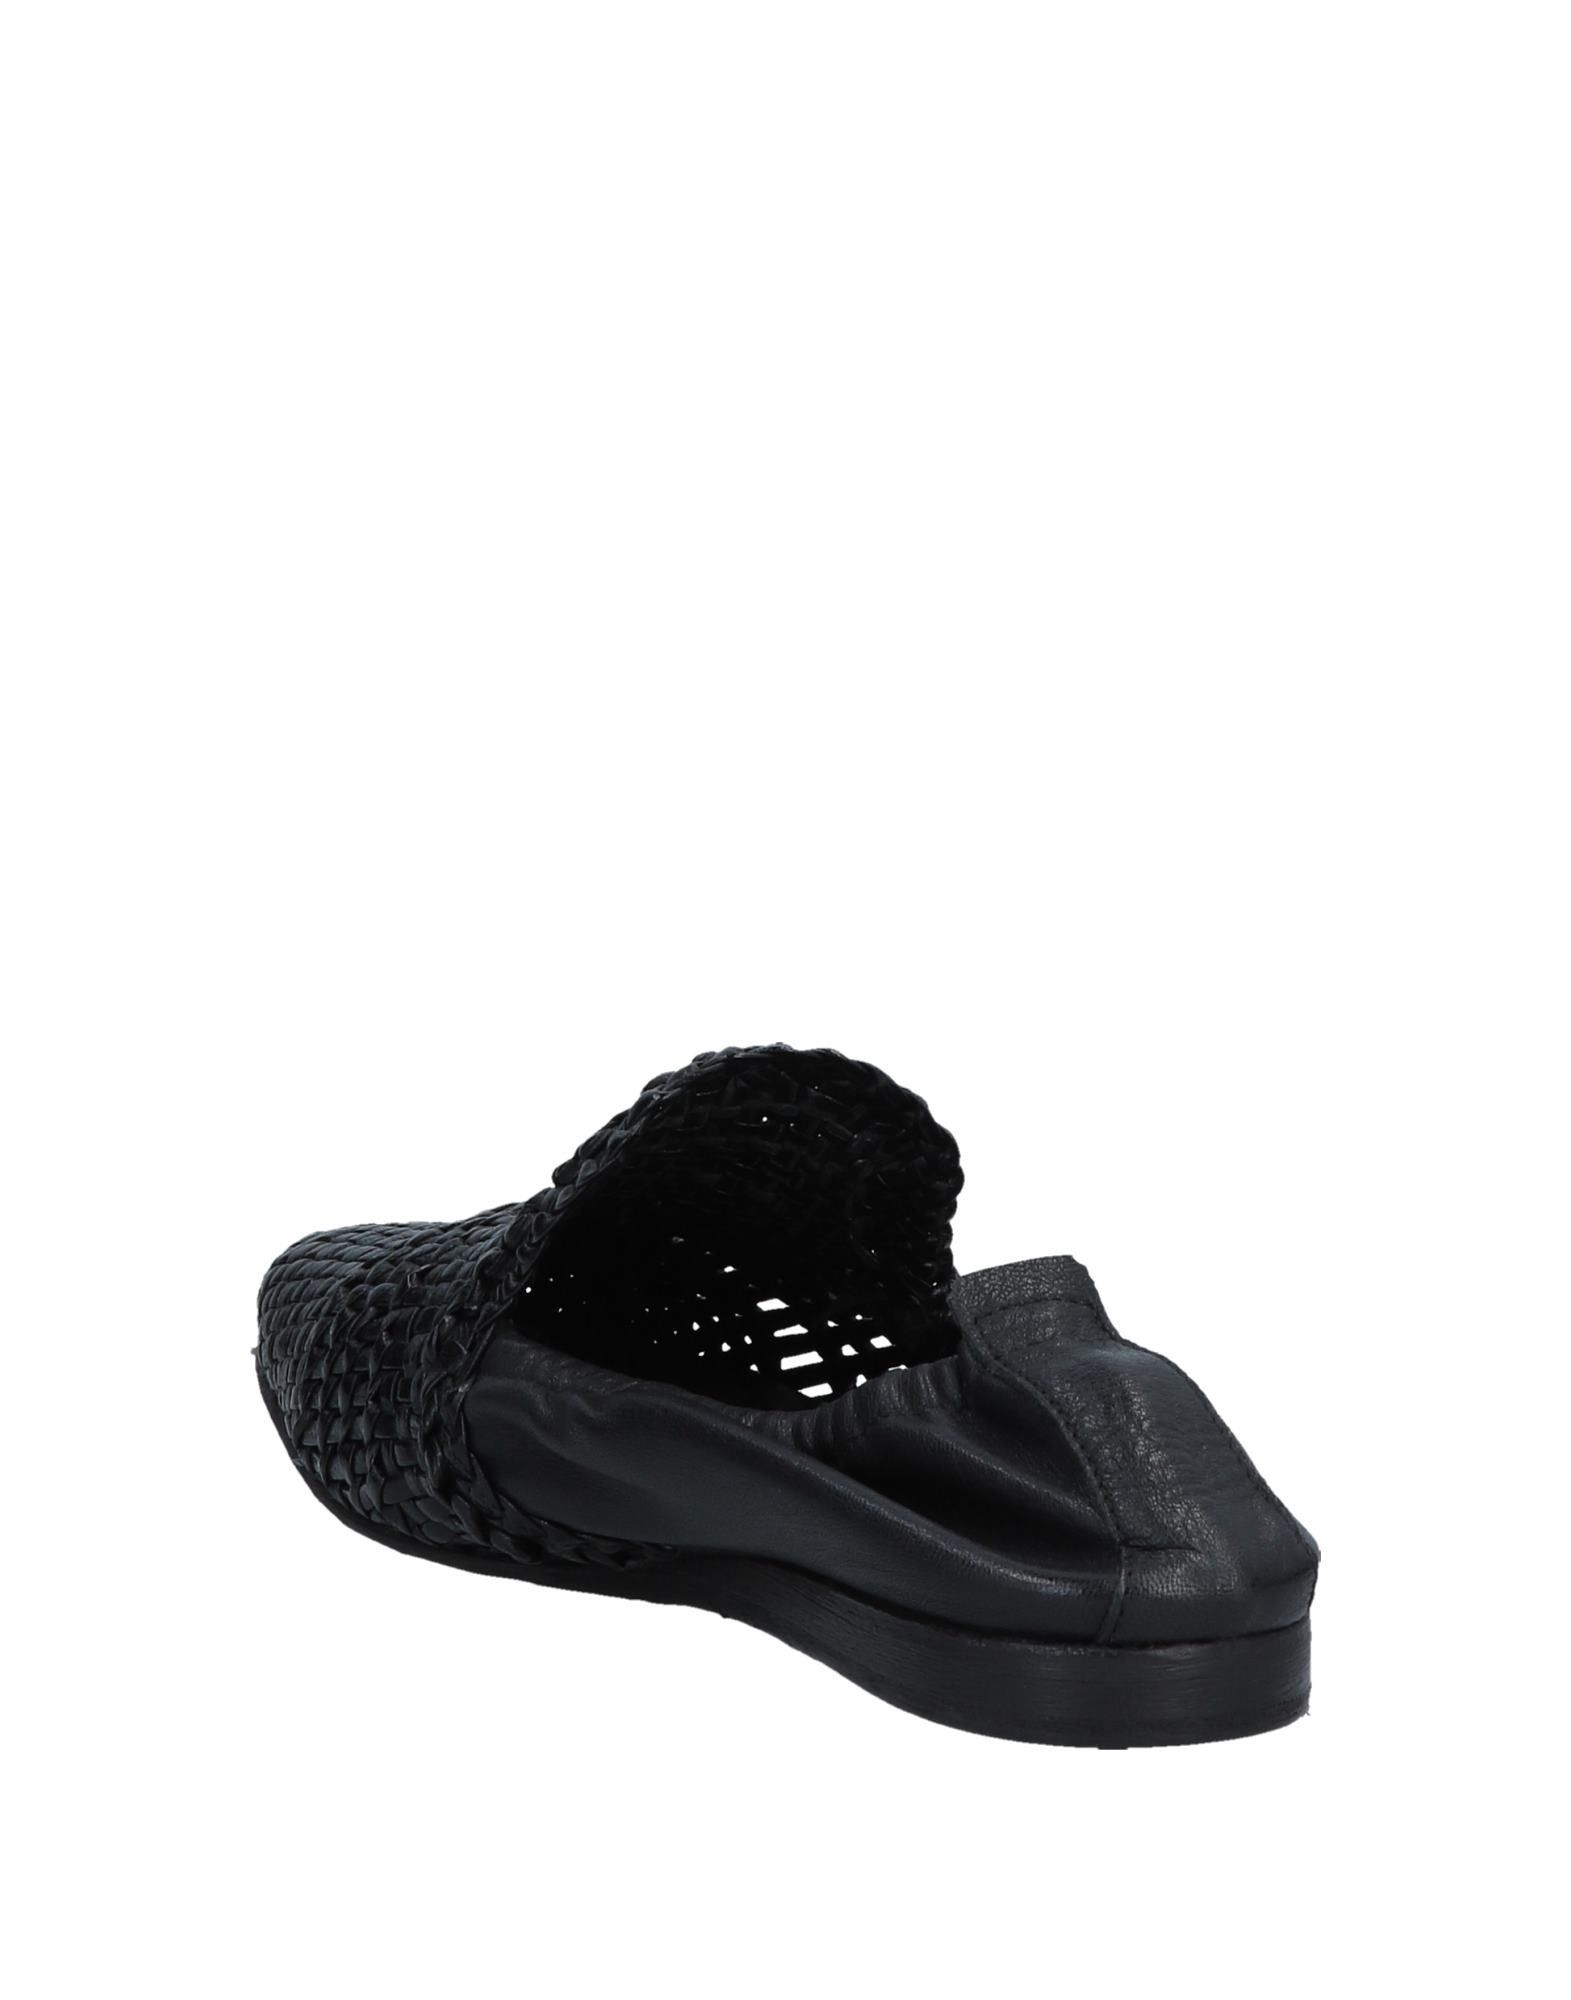 Lemare Black Leather Loafers